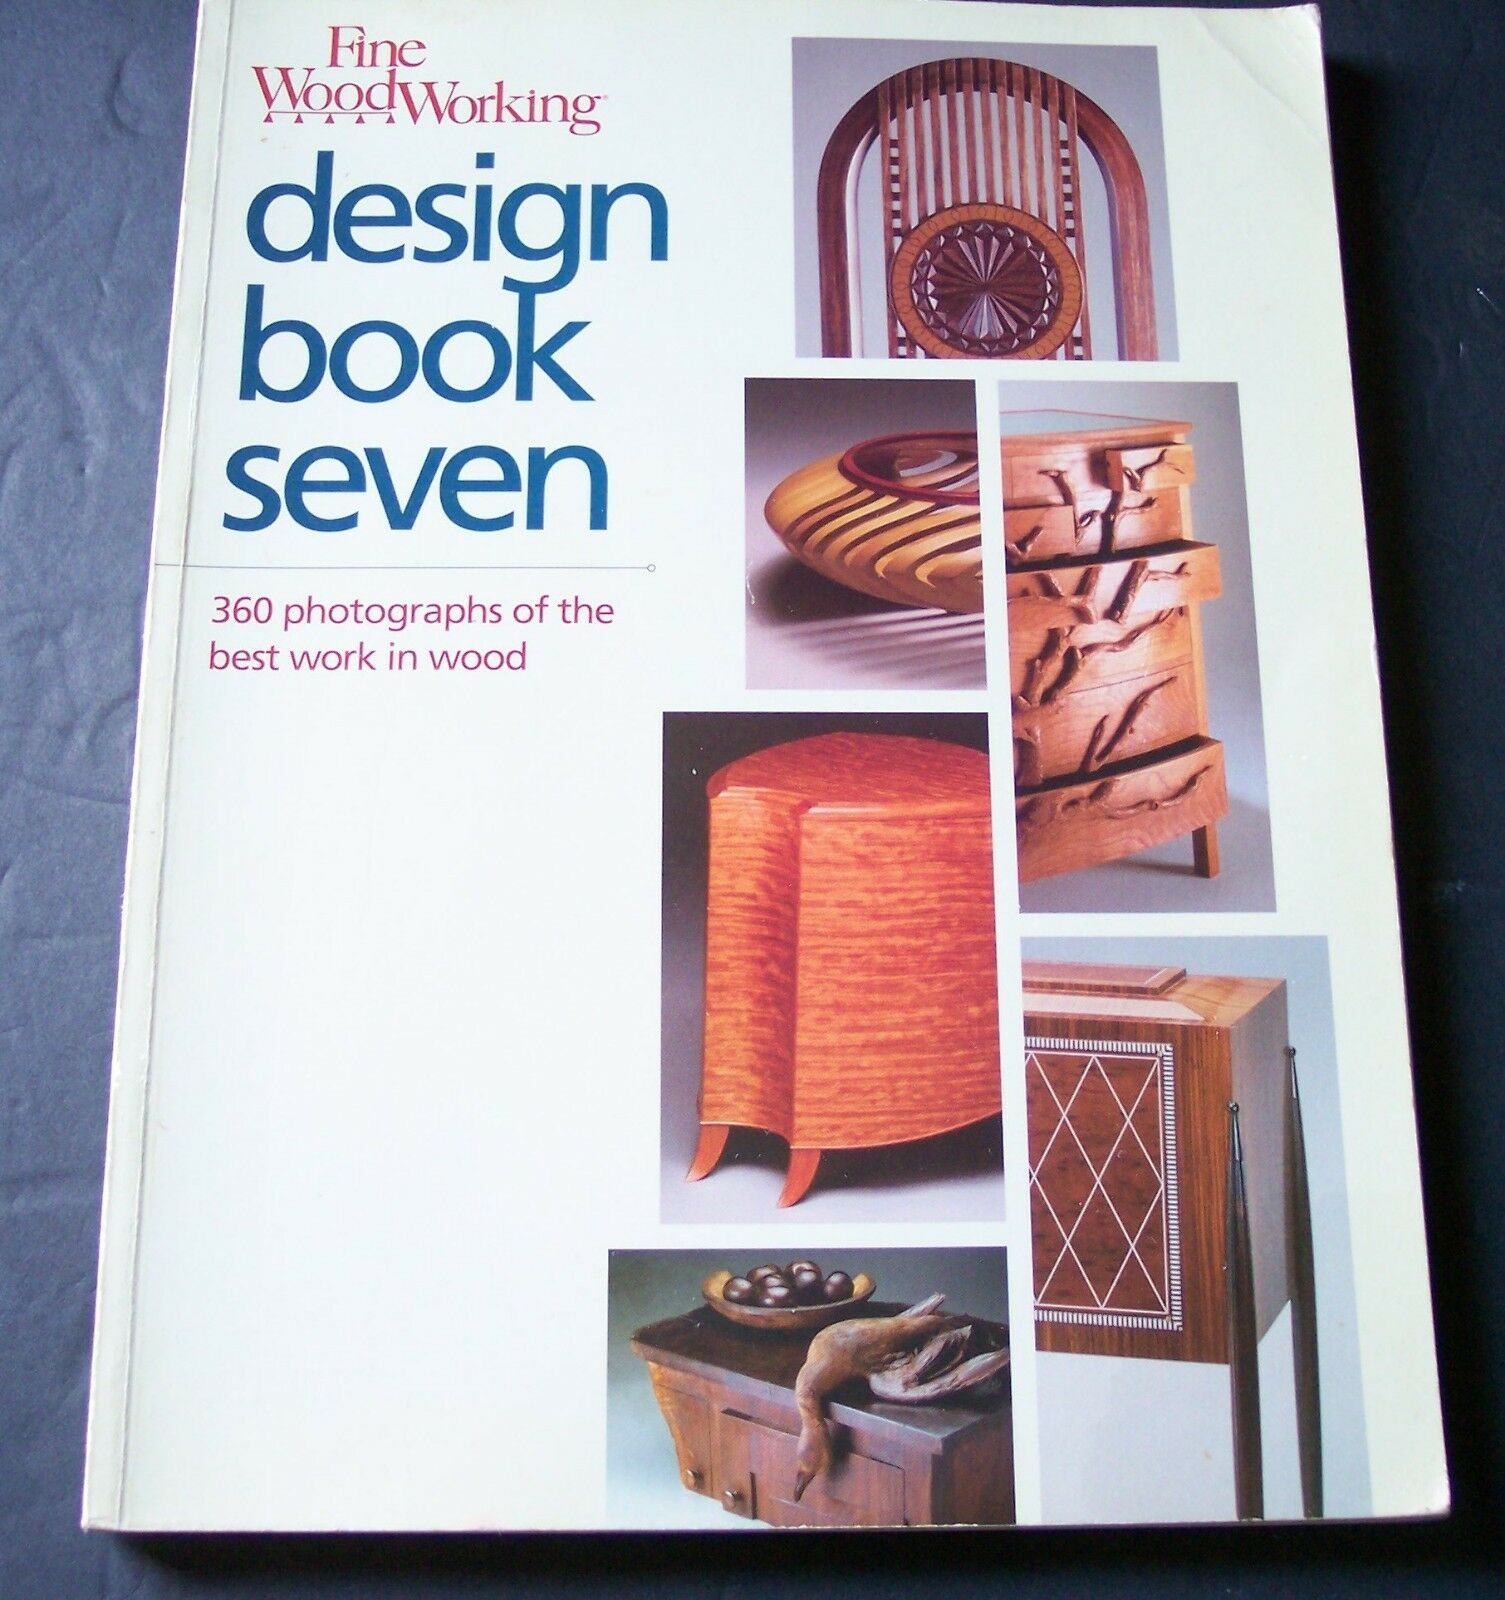 fine woodworking design book seven 360 photographs of the best work in wood  bks